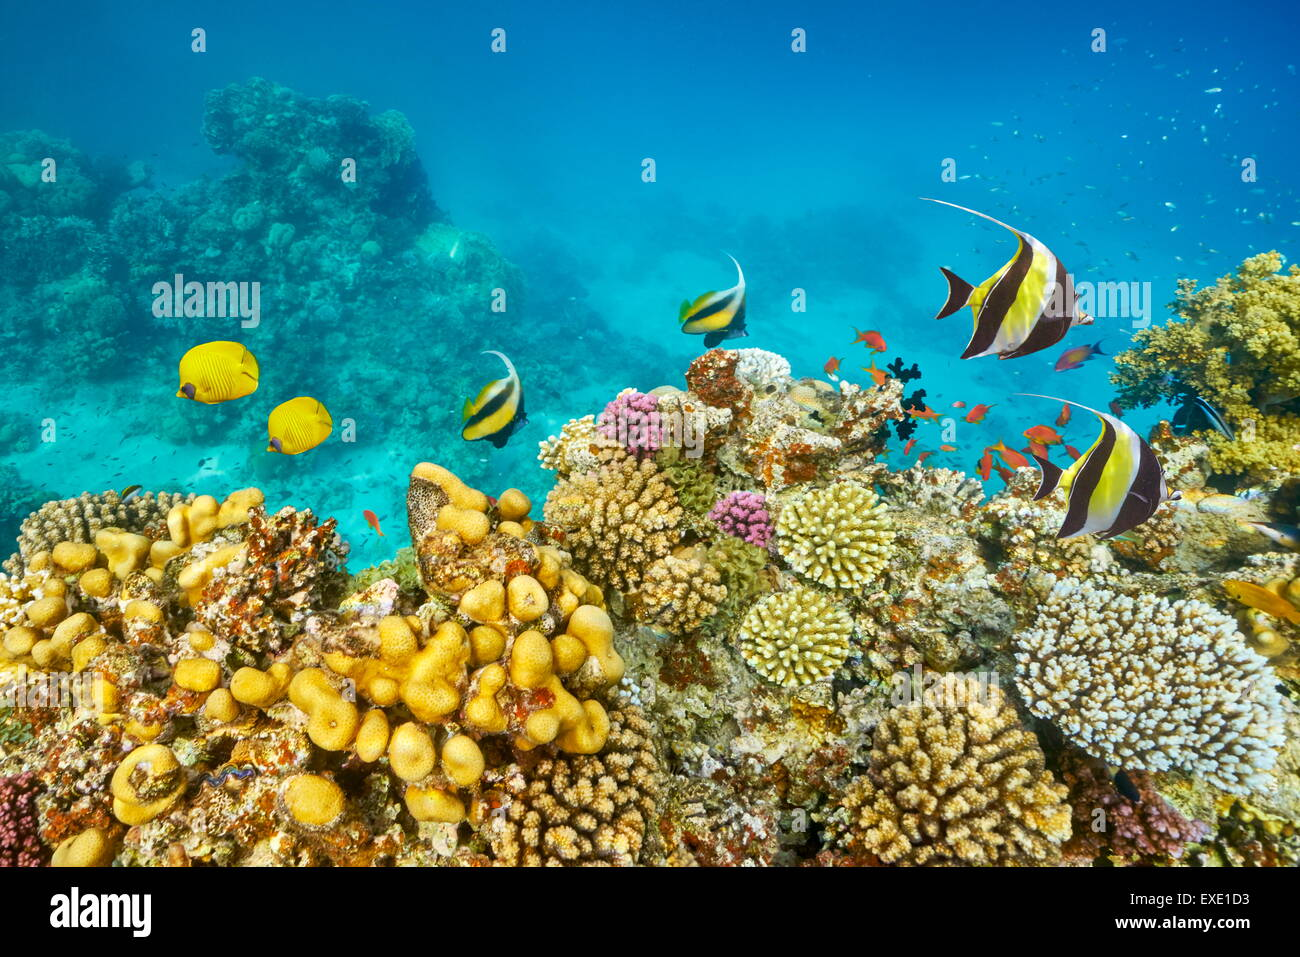 Red Sea - Underwater diving picture of fish over the coral reef, Marsa Alam, Egypt - Stock Image